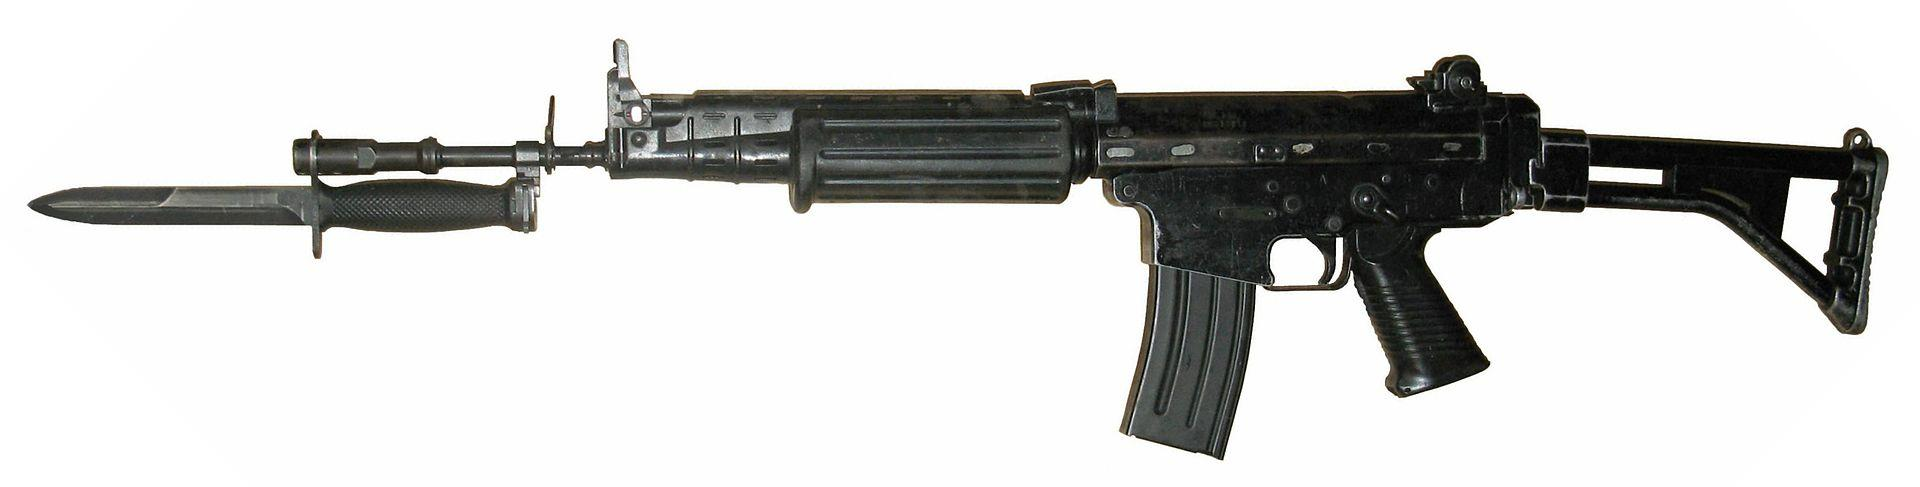 FN FNC rifle equipped with a bayonet